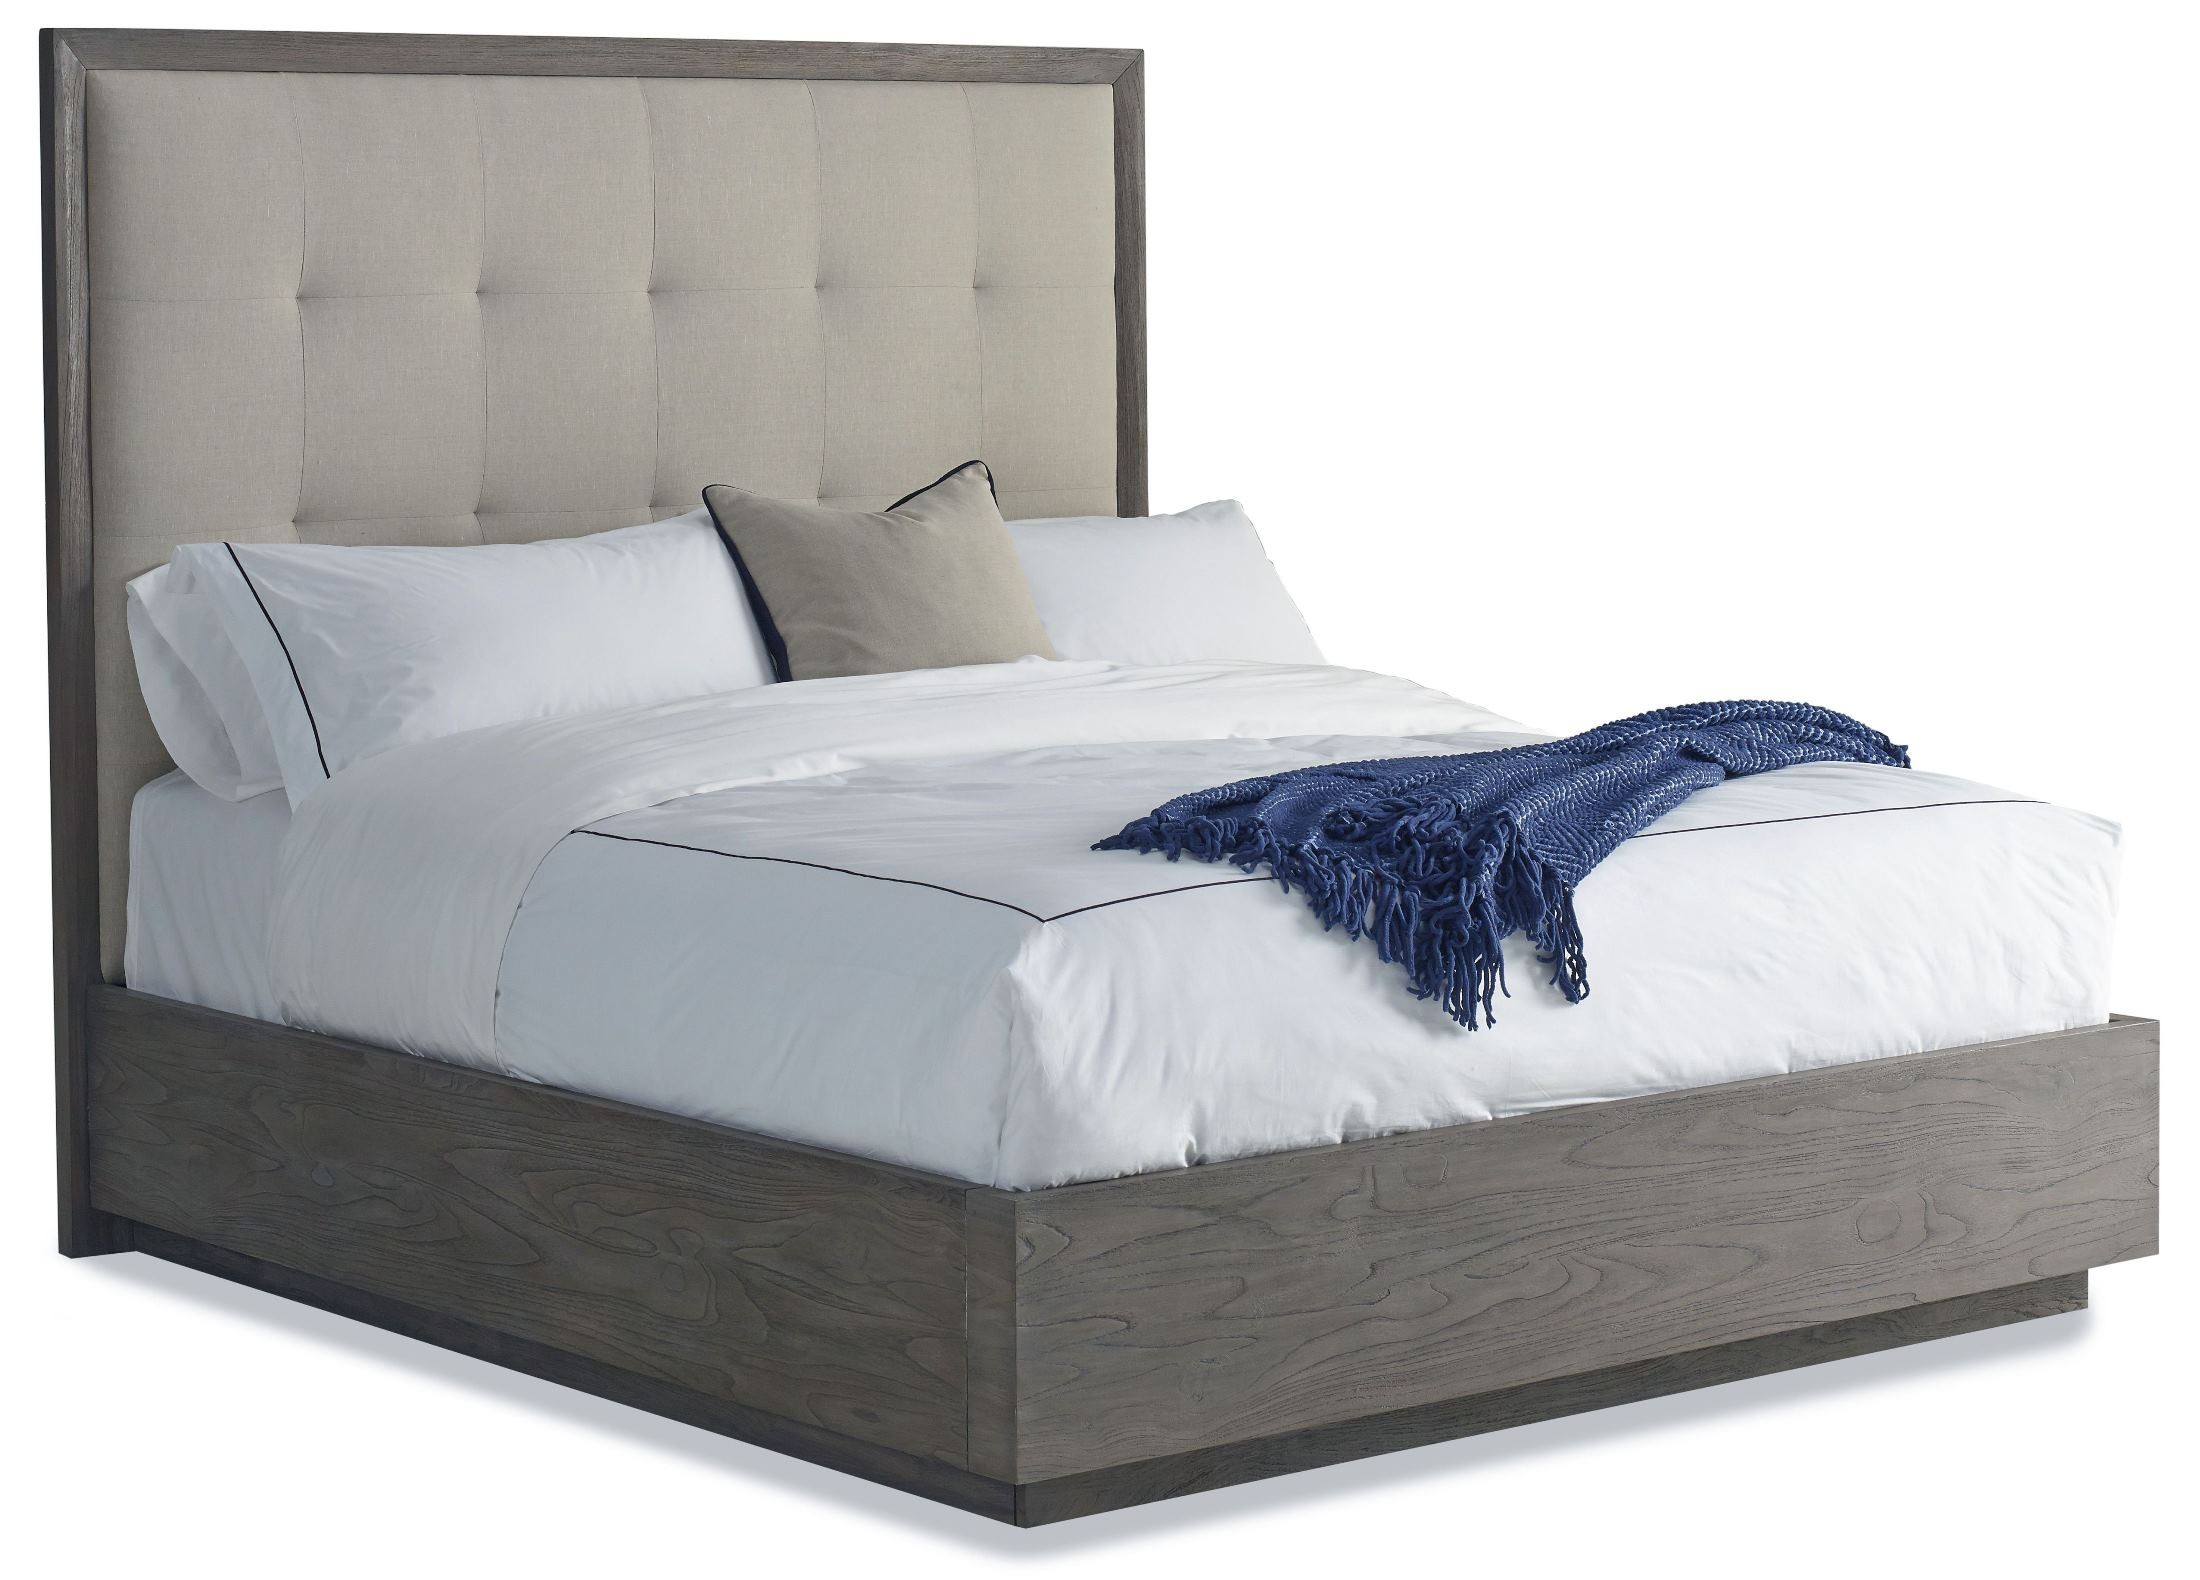 Palmer queen upholstered platform bed from brownstone for 5 in 1 bed